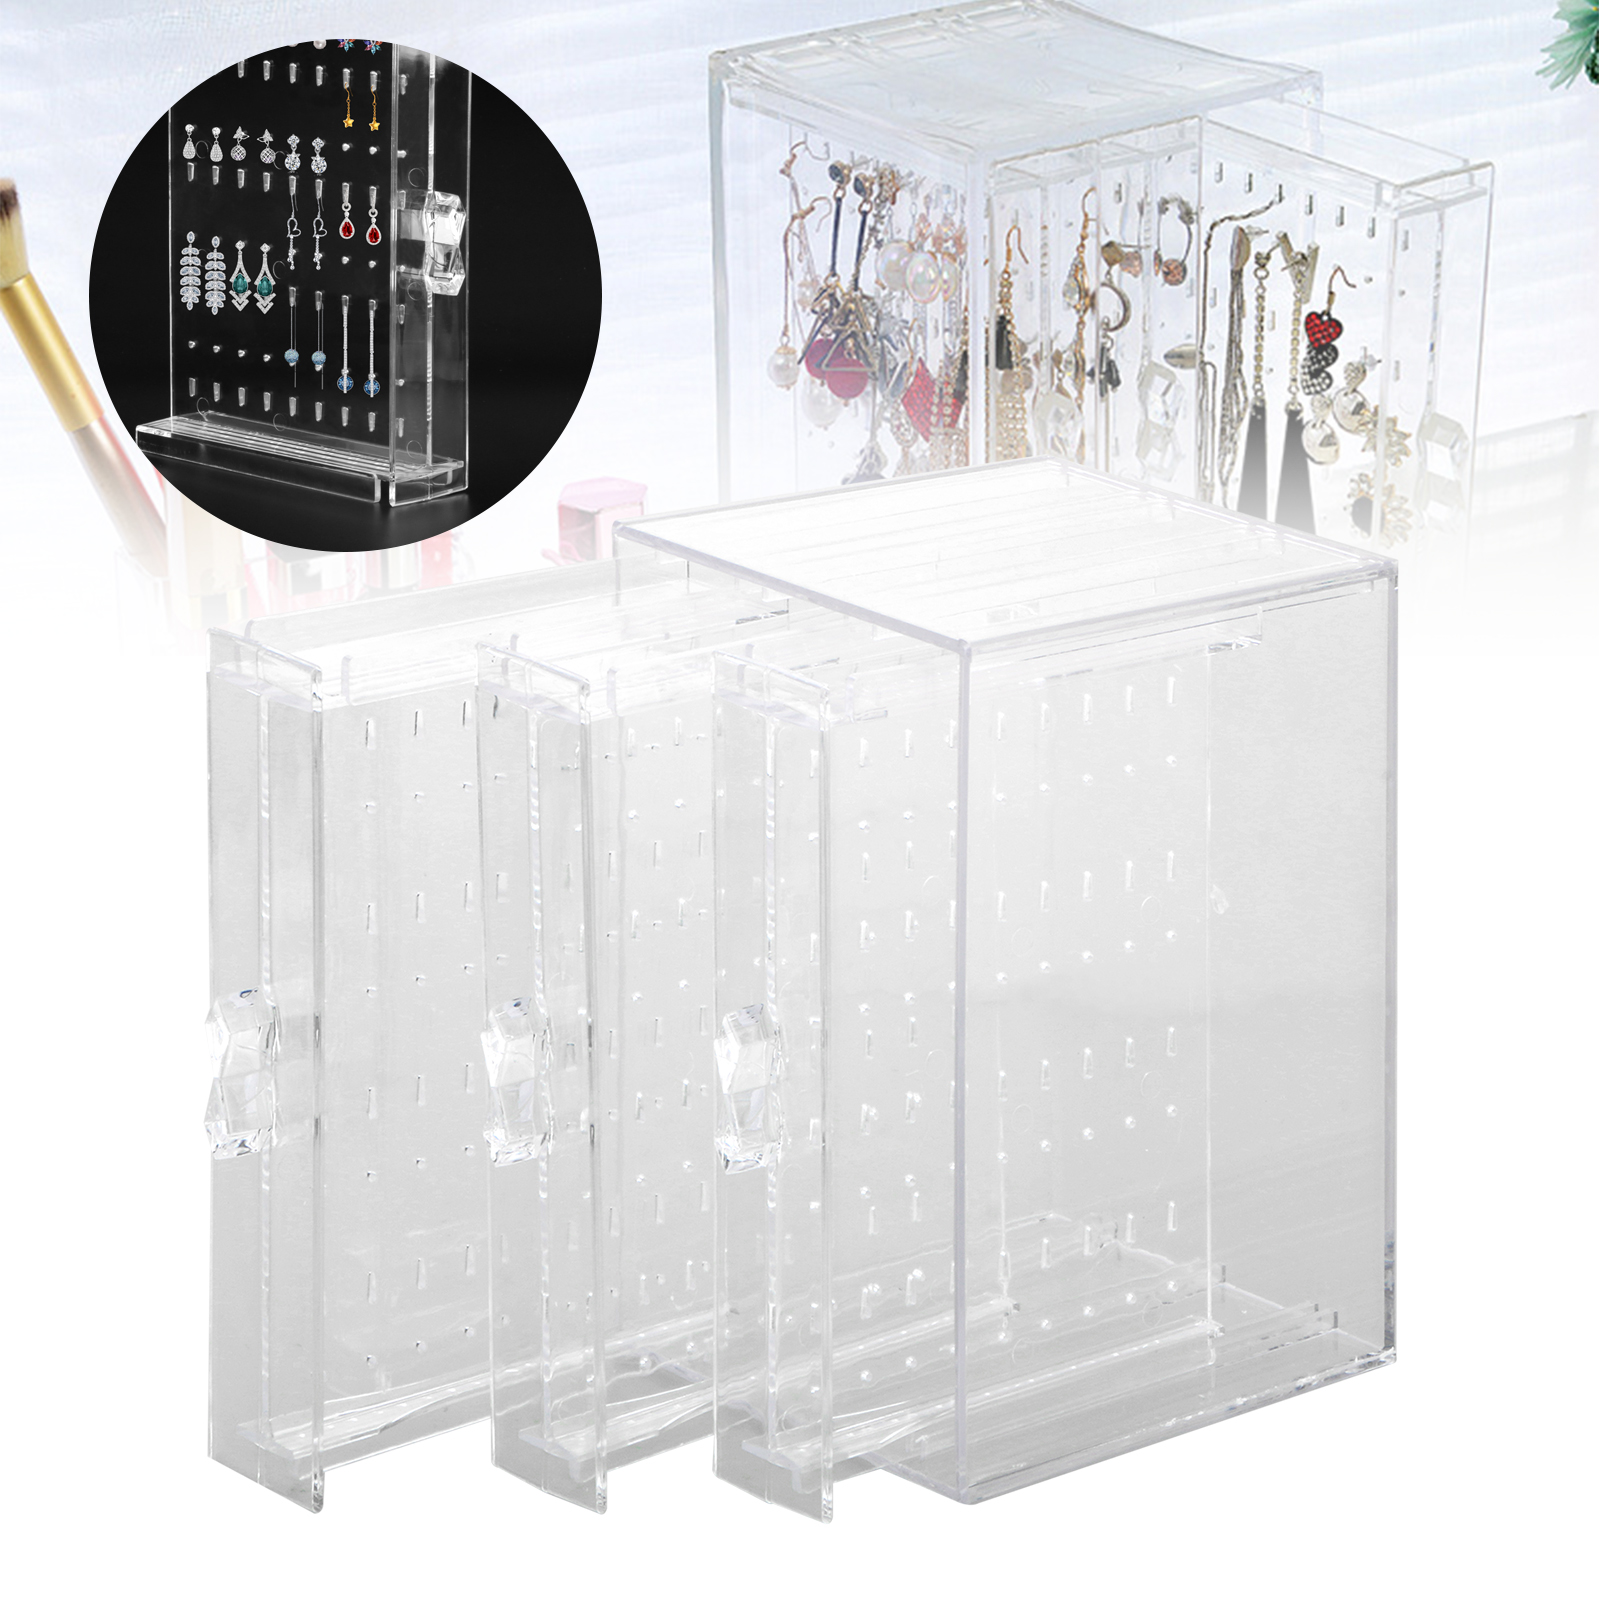 EEEkit Jewelry Storage Box, 3 Vertical Drawer, Earrings Display Stand Organizer Holder, Plastic Clear Bracelet Hanger, Fine Jewelry Organization